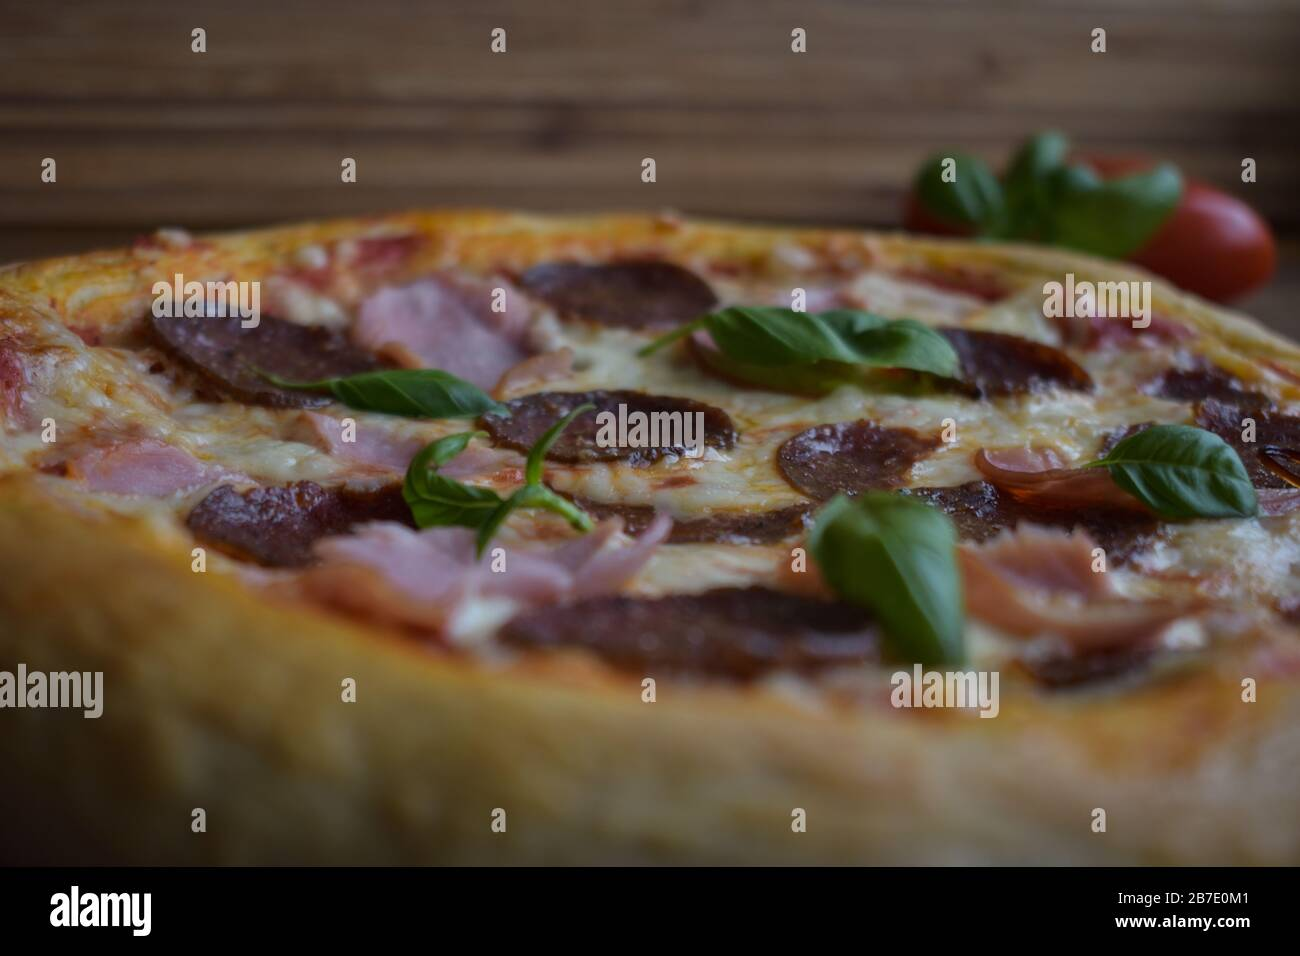 Homemade Pizza Baked In Oven On Pizza Stone With Peperoni And Ham Garnished With Basil Stock Photo Alamy